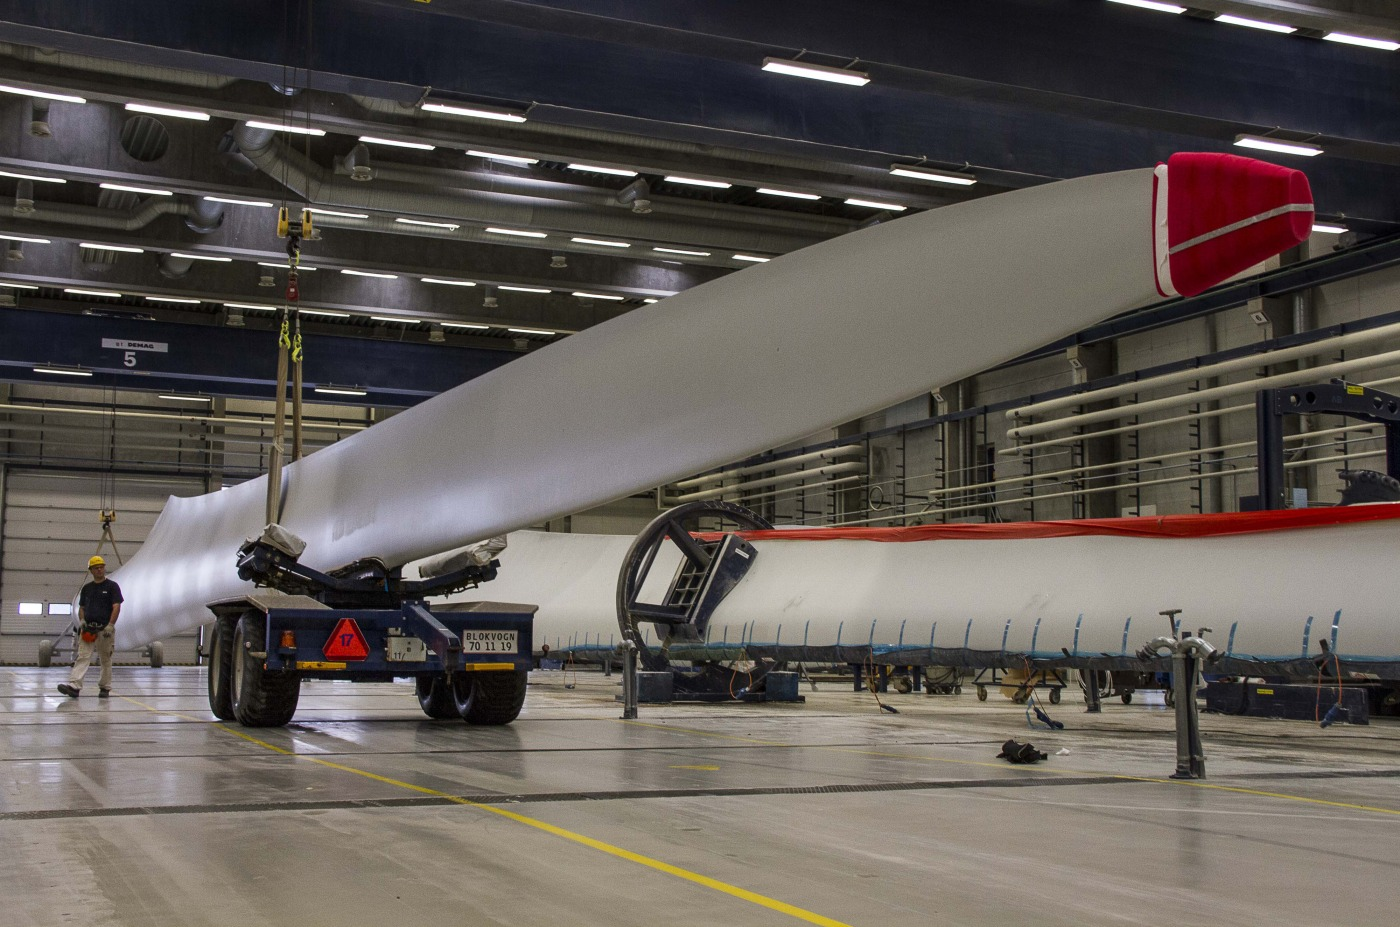 An employee walks between wind turbine blades at the Vestas Wind Systems A/S blade factory in Lem, Denmark.